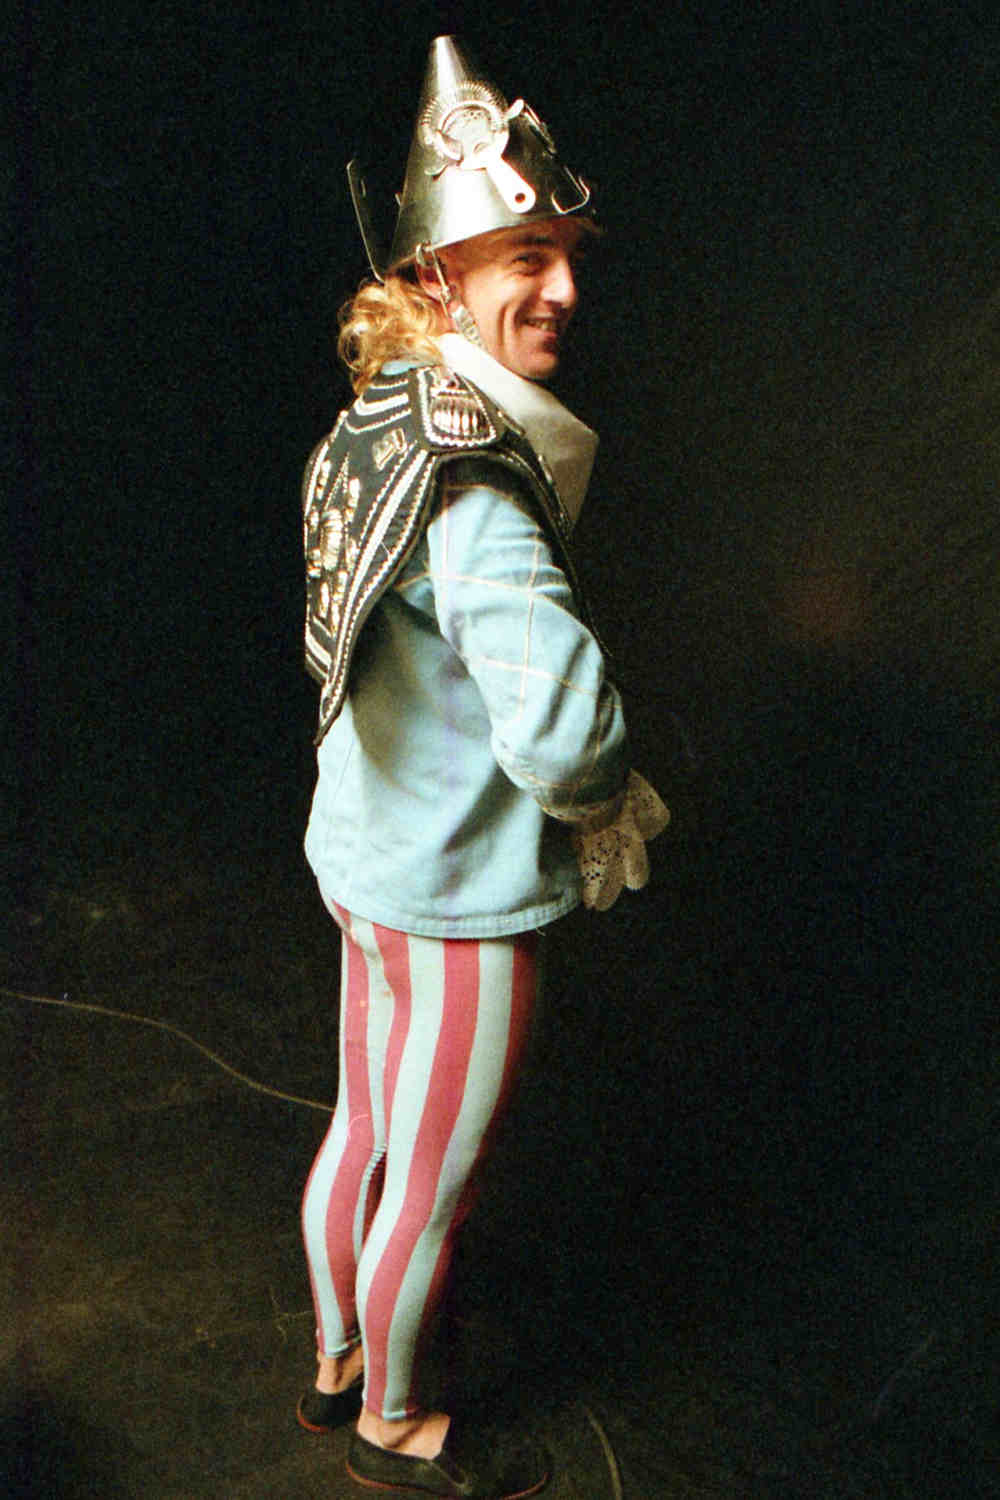 costumed actor wearing blue and silver jacket, striped blue and purple tights and silver colander helmet